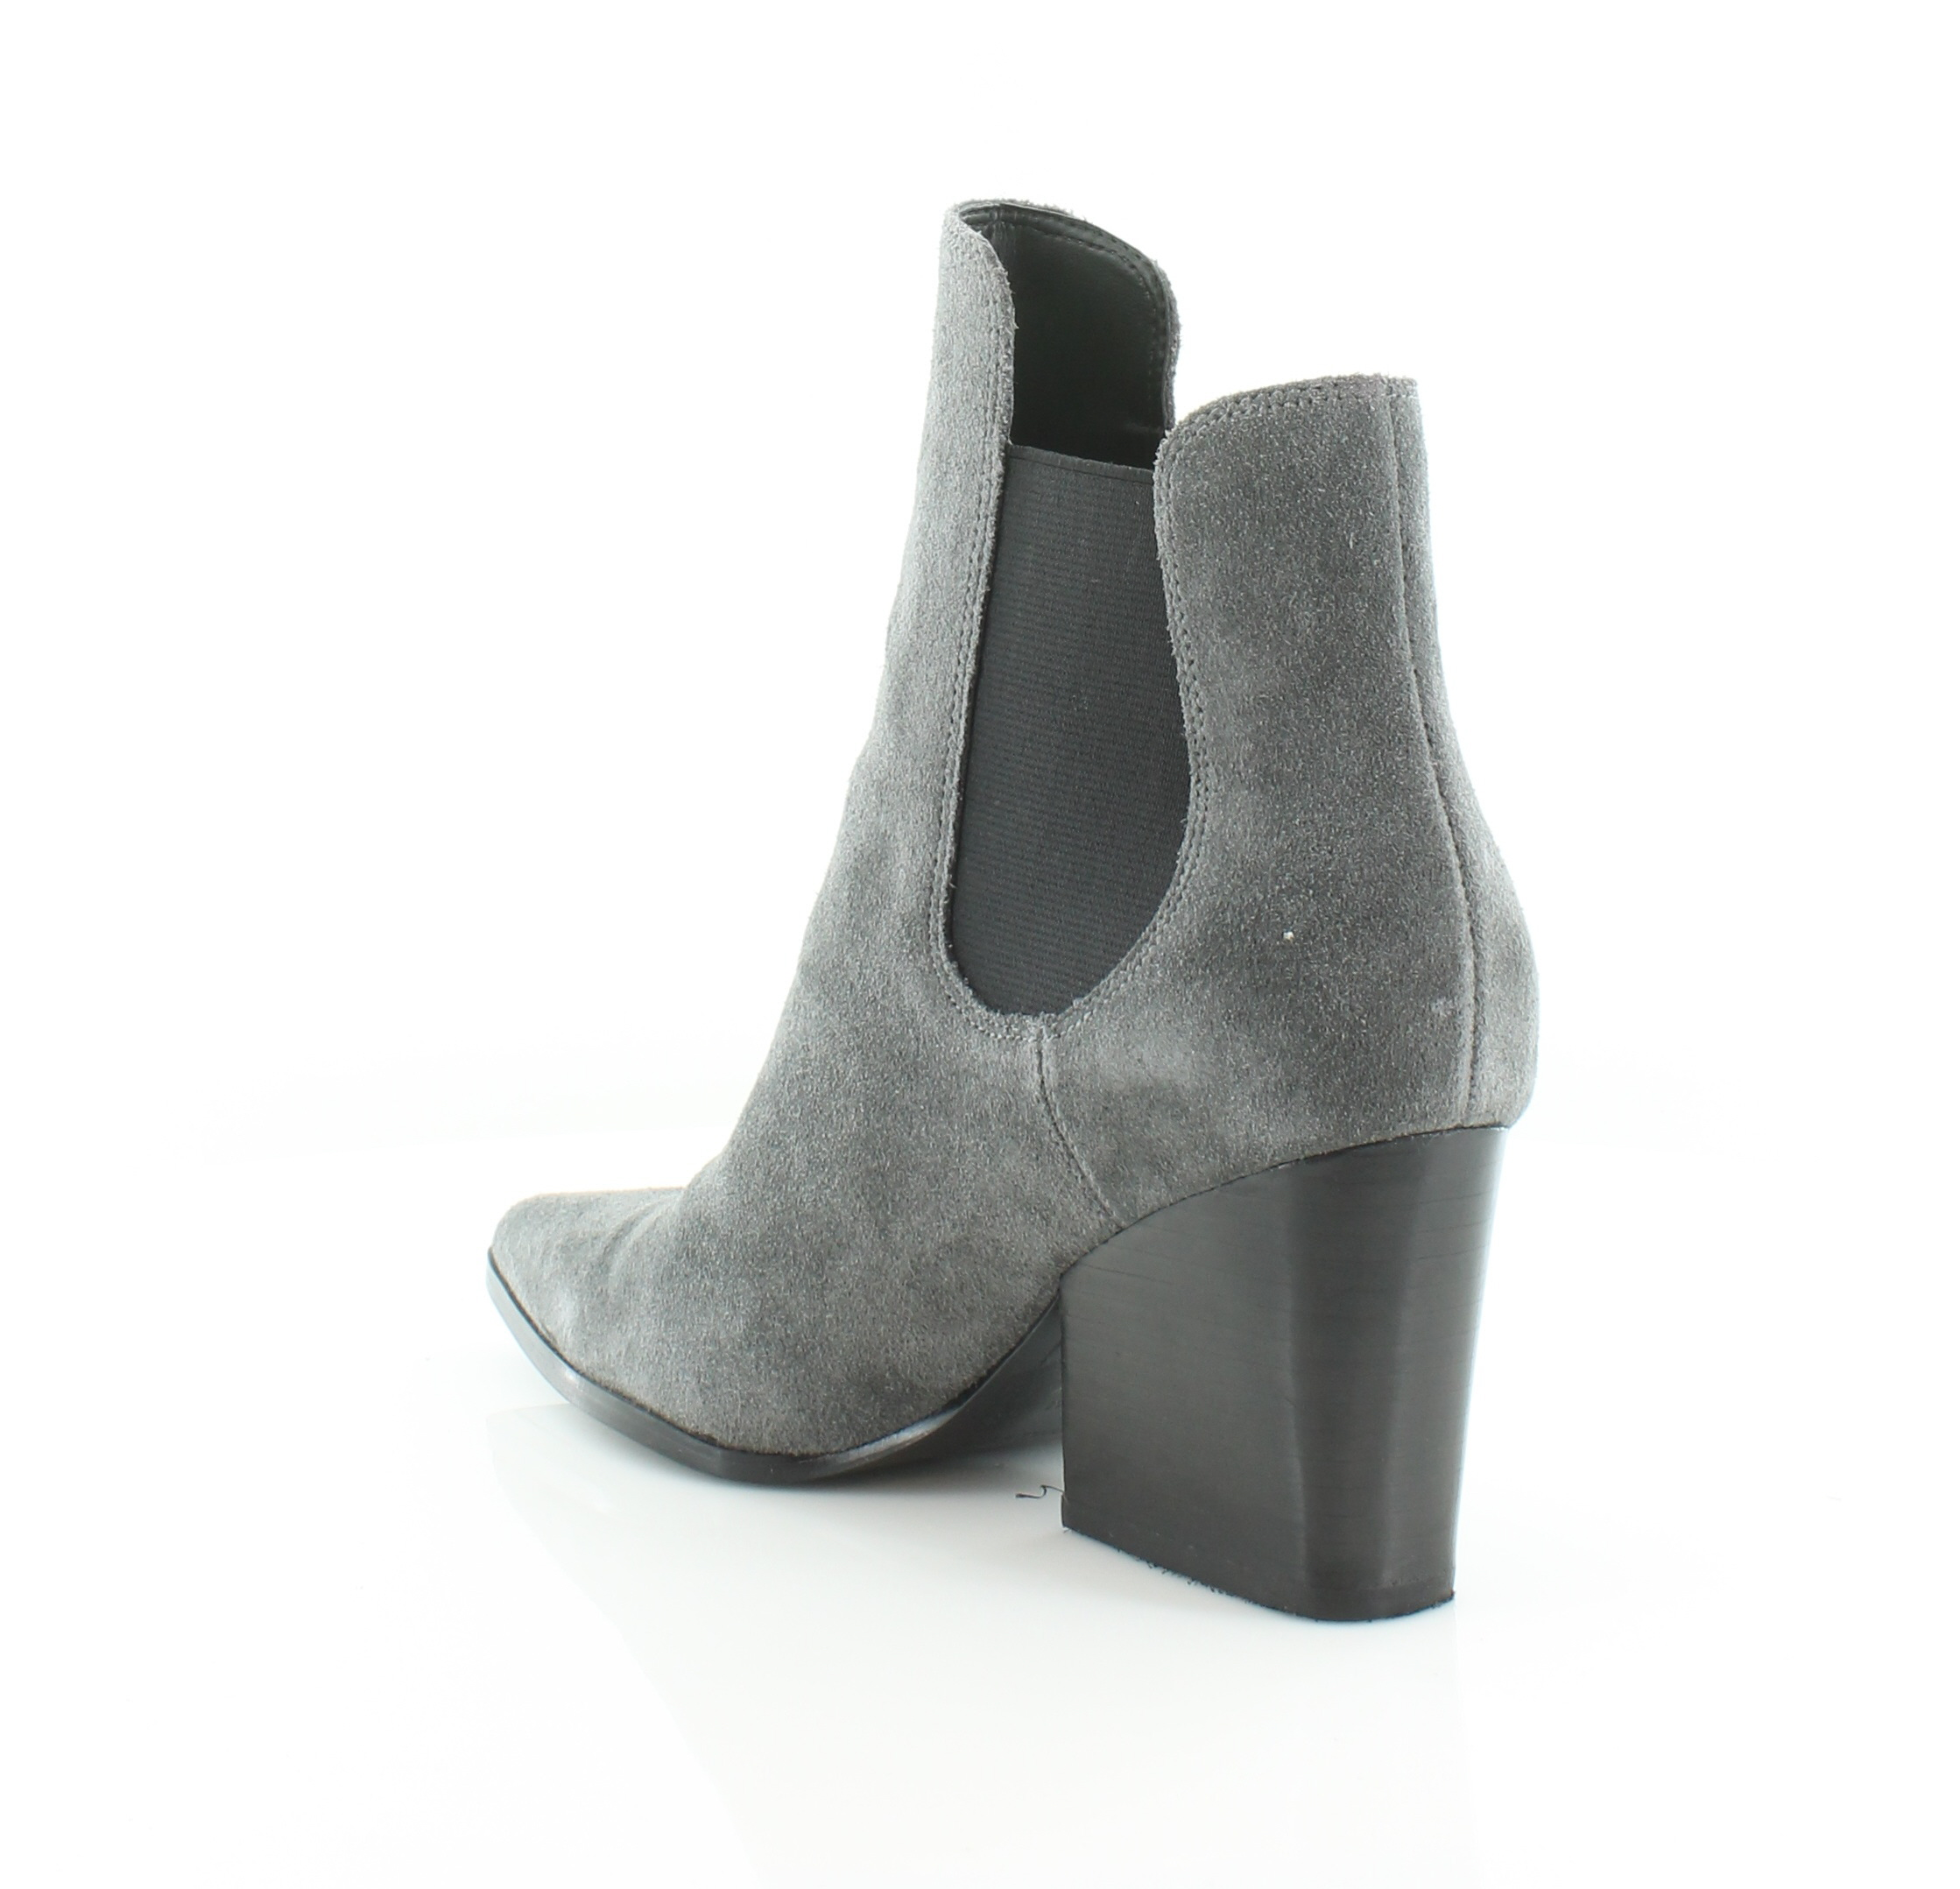 Kendall + Kylie Finley Women's Boots Gray Multi Size 6 M